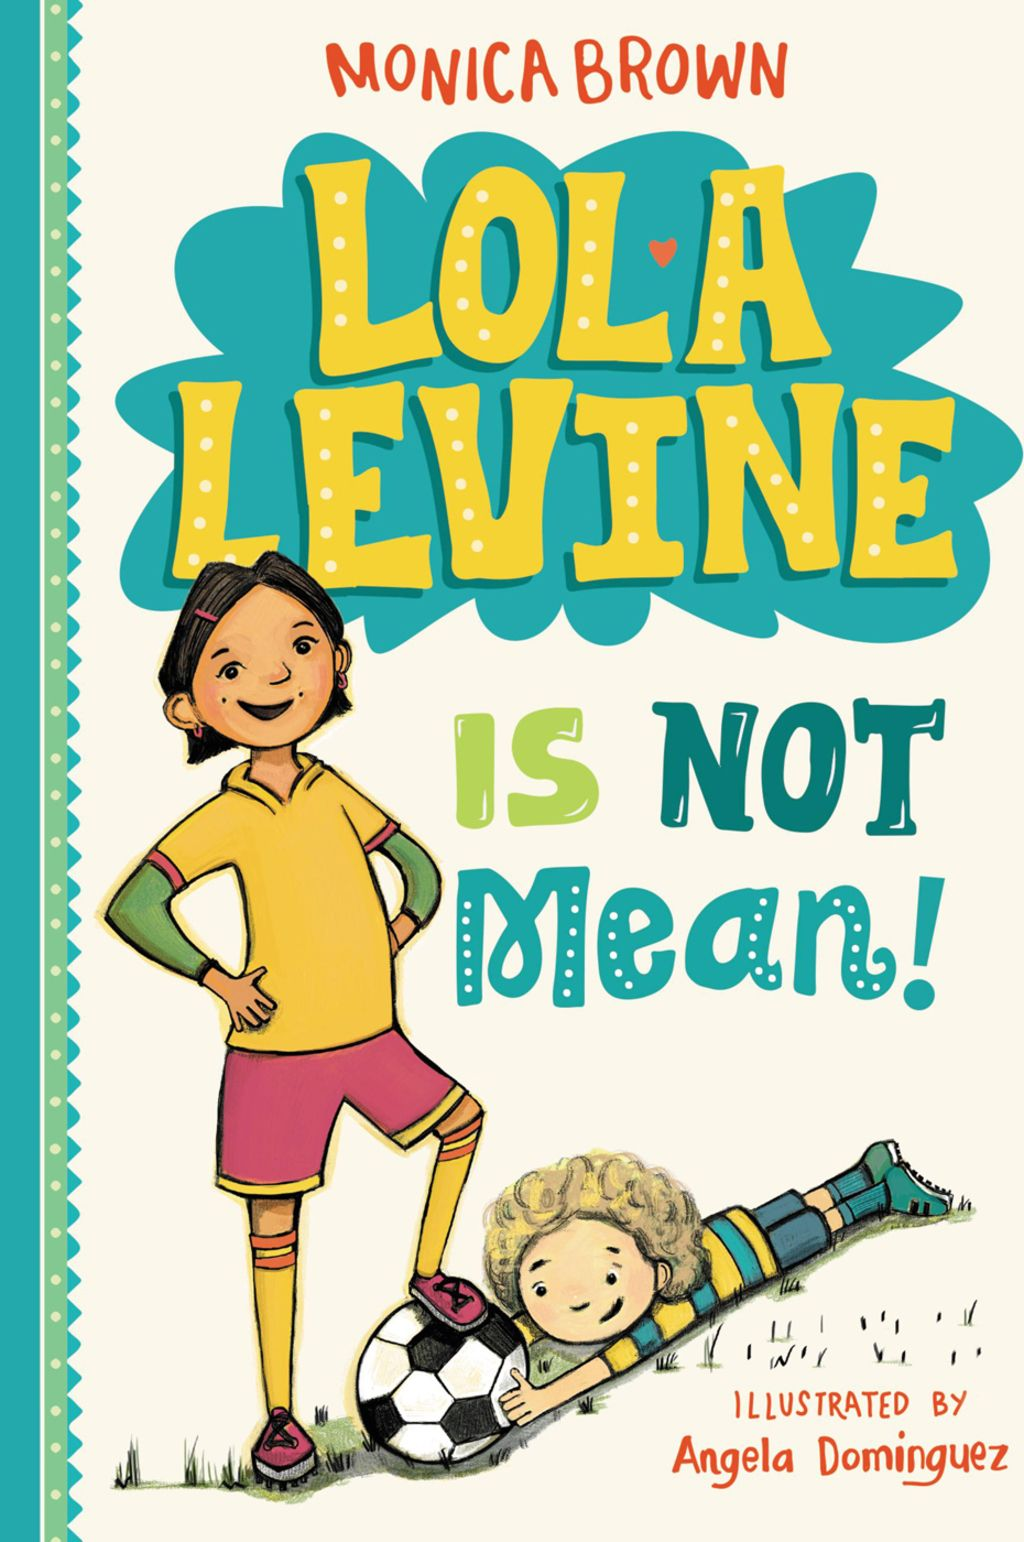 Lola Levine is NOT Mean! book cover